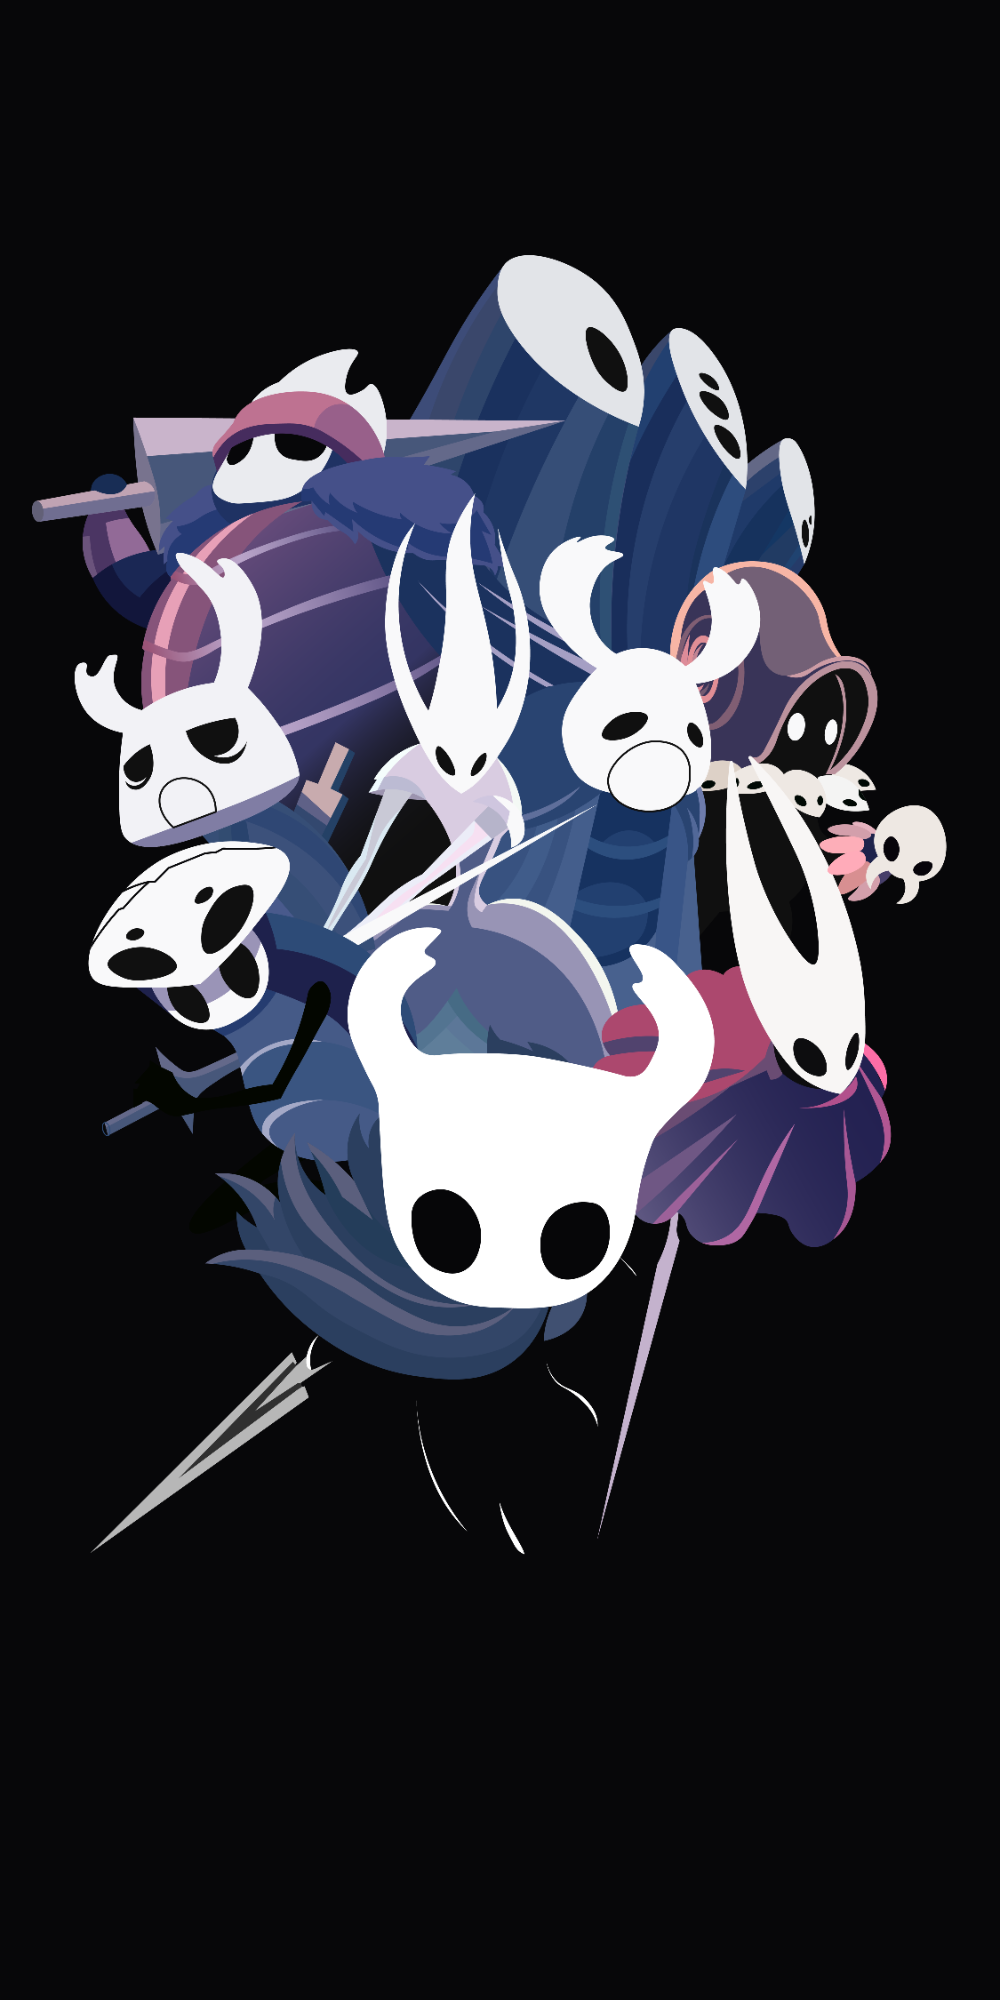 Android Hollow Knight Phone Wallpaper In 2020 Phone Wallpaper